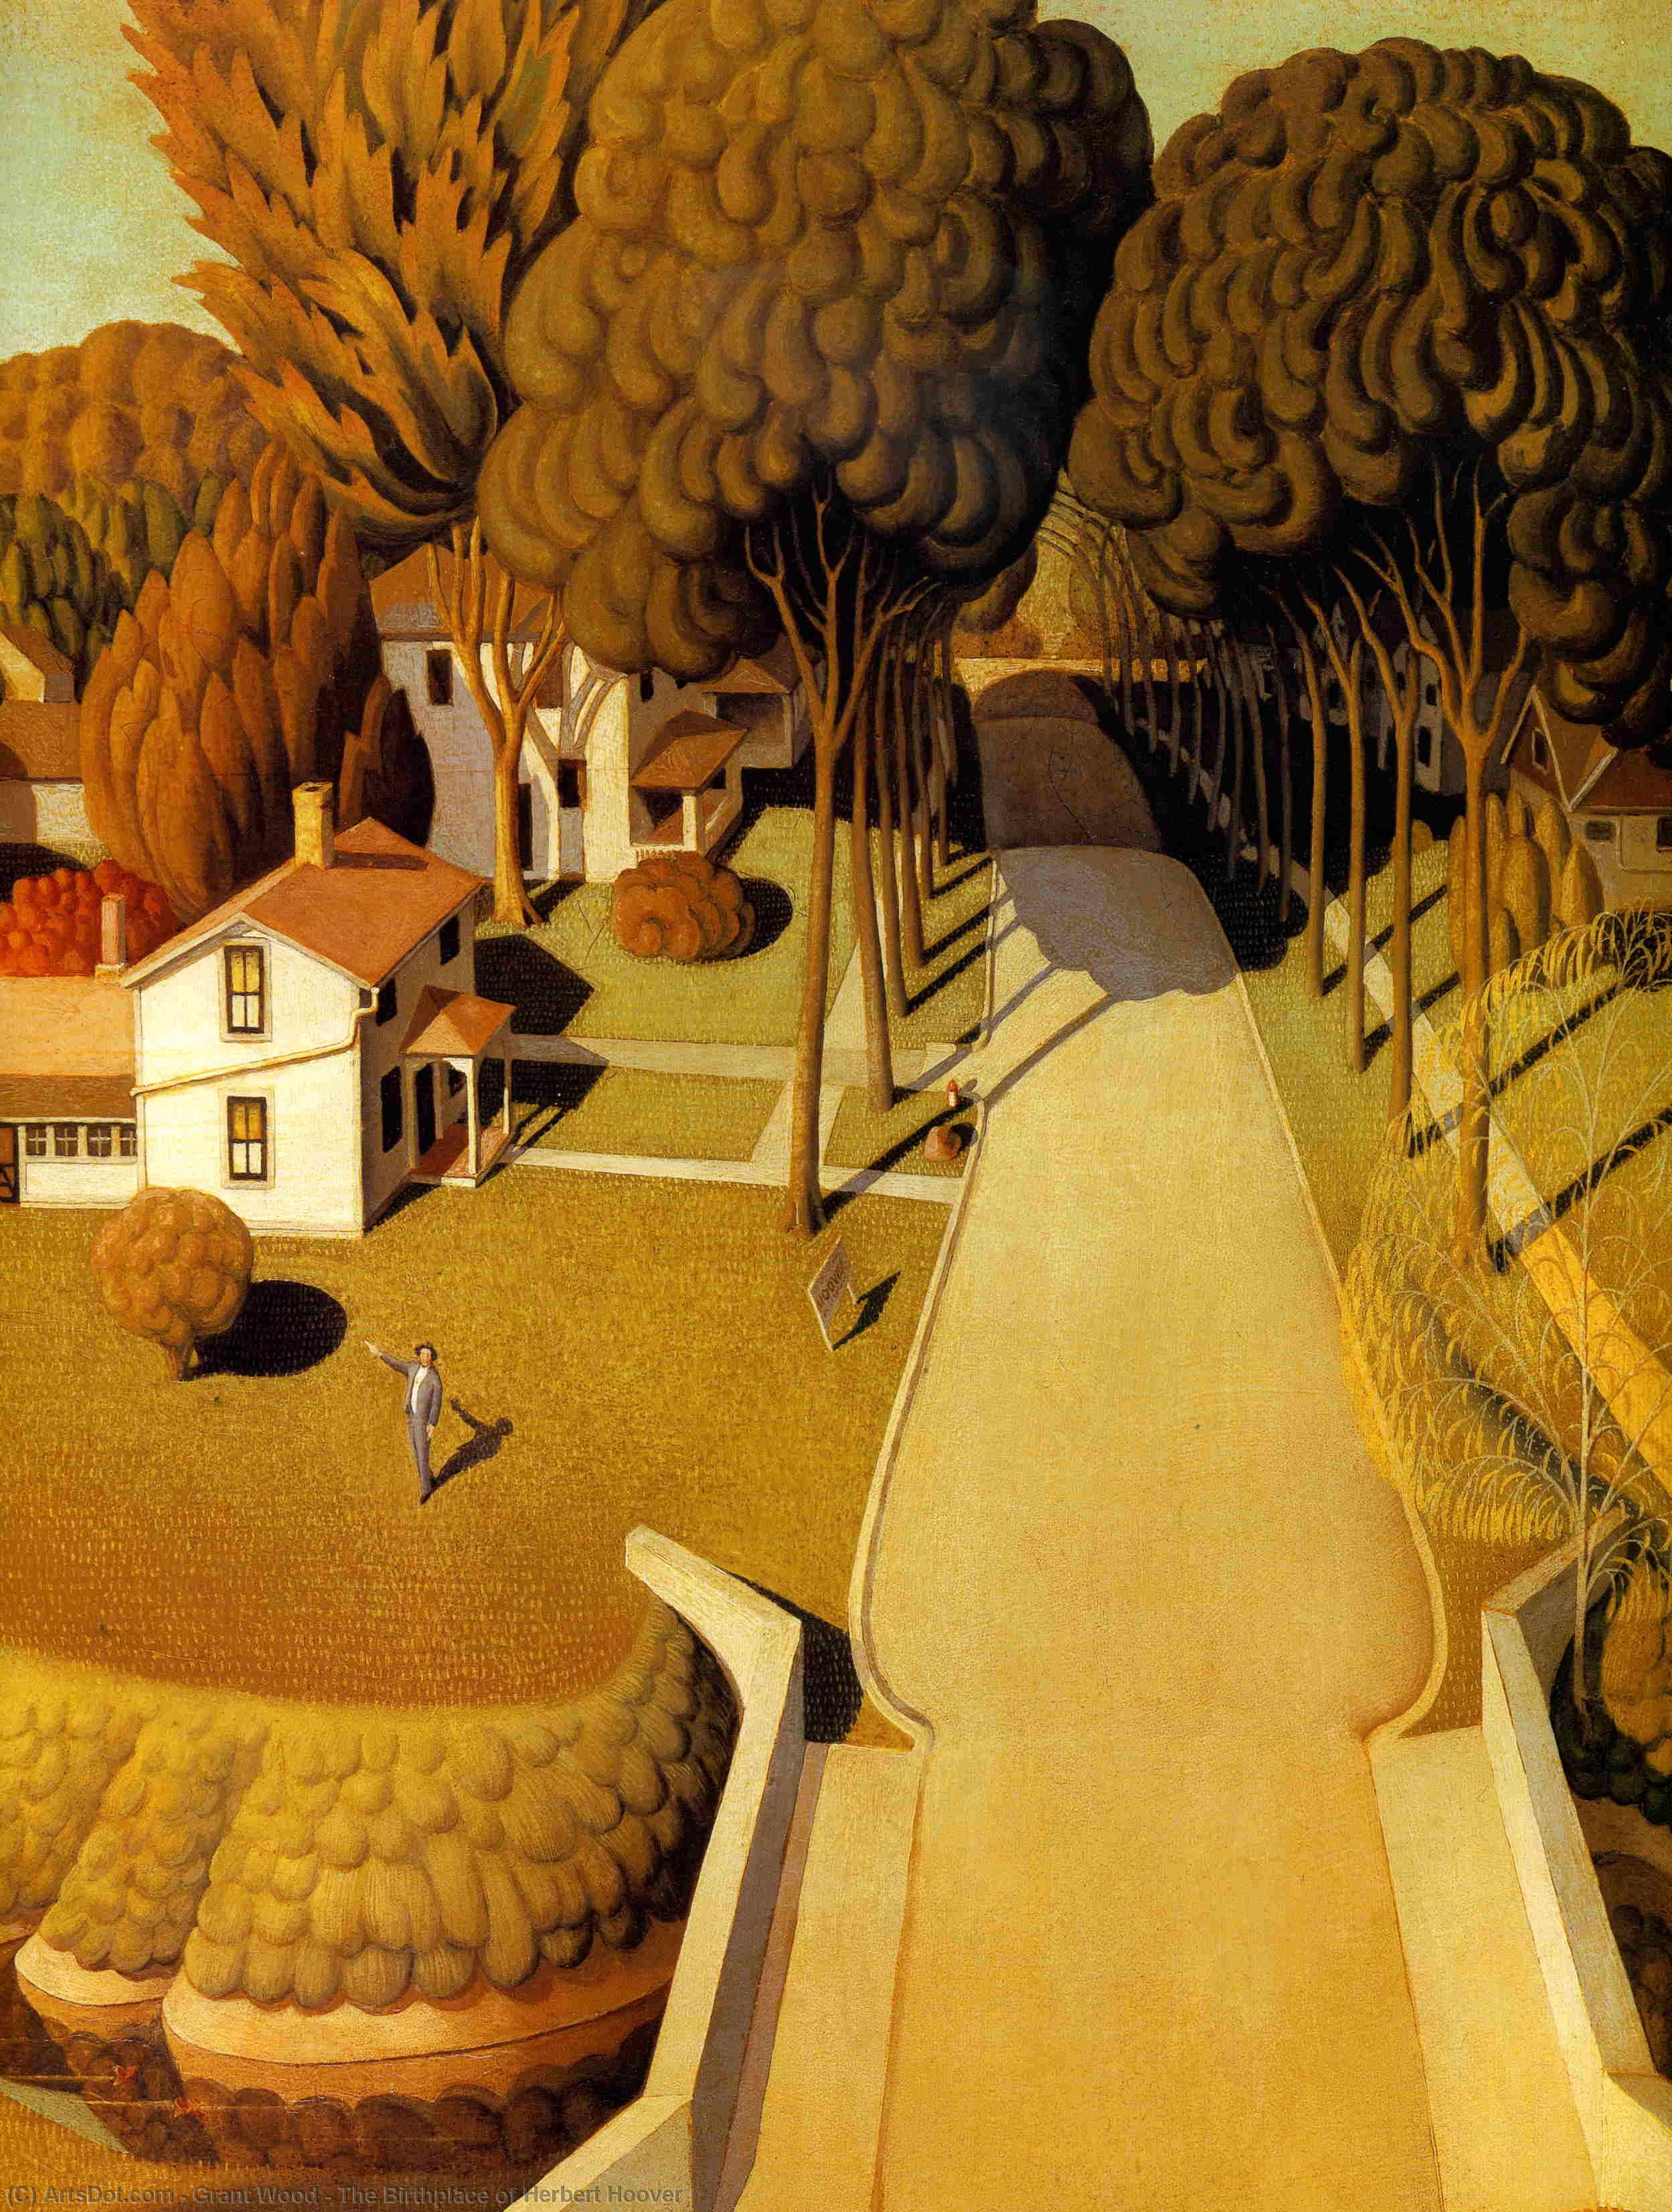 Wikioo.org - The Encyclopedia of Fine Arts - Painting, Artwork by Grant Wood - The Birthplace of Herbert Hoover